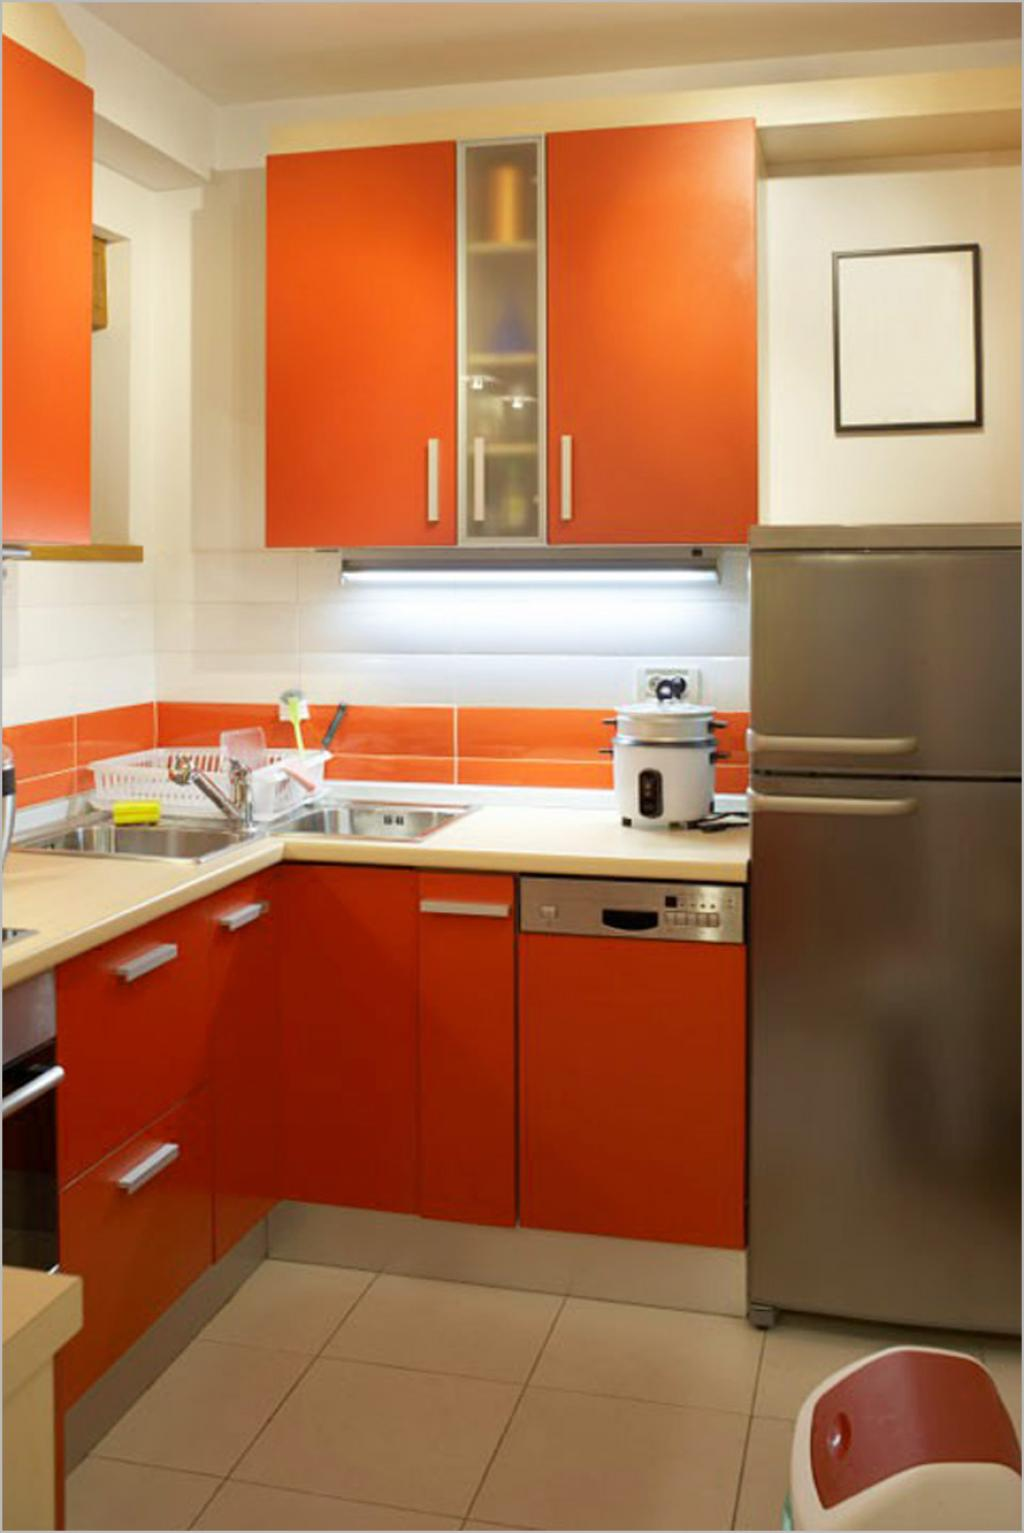 28 Small Kitchen Design Ideas - The WoW Style on Small Space Small Kitchen Ideas  id=18333